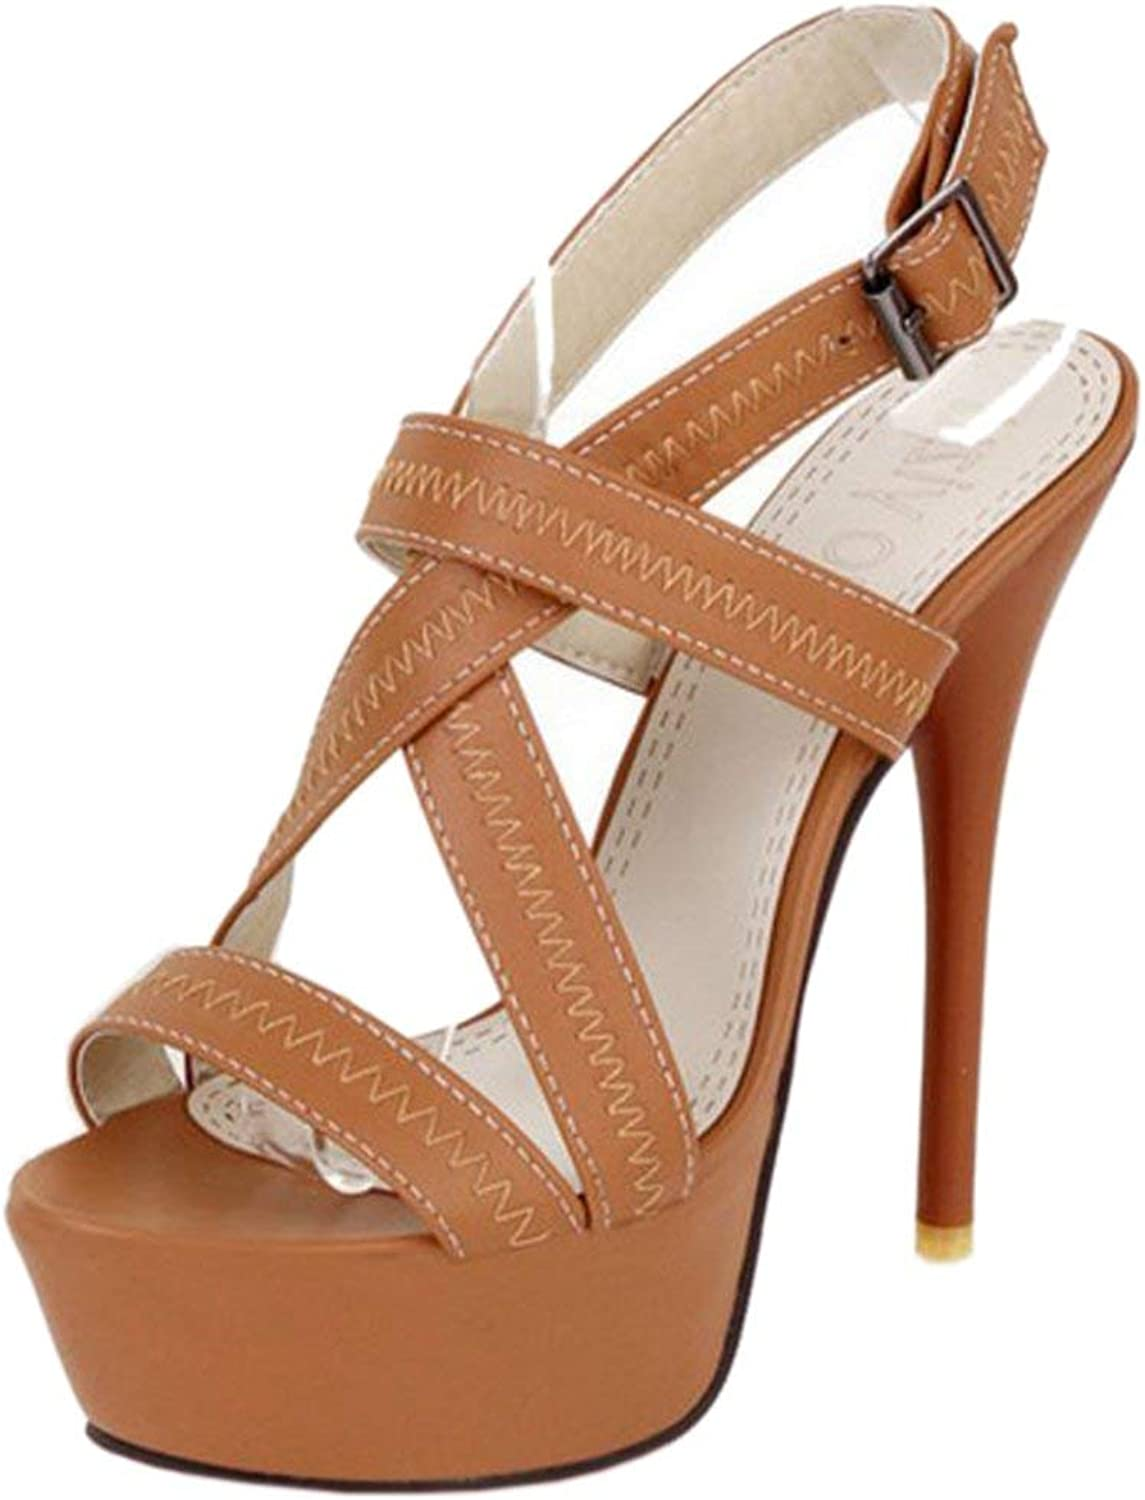 Unm Women Elegant Platform Slingback Buckle Strap Party Stiletto Heel Sandals